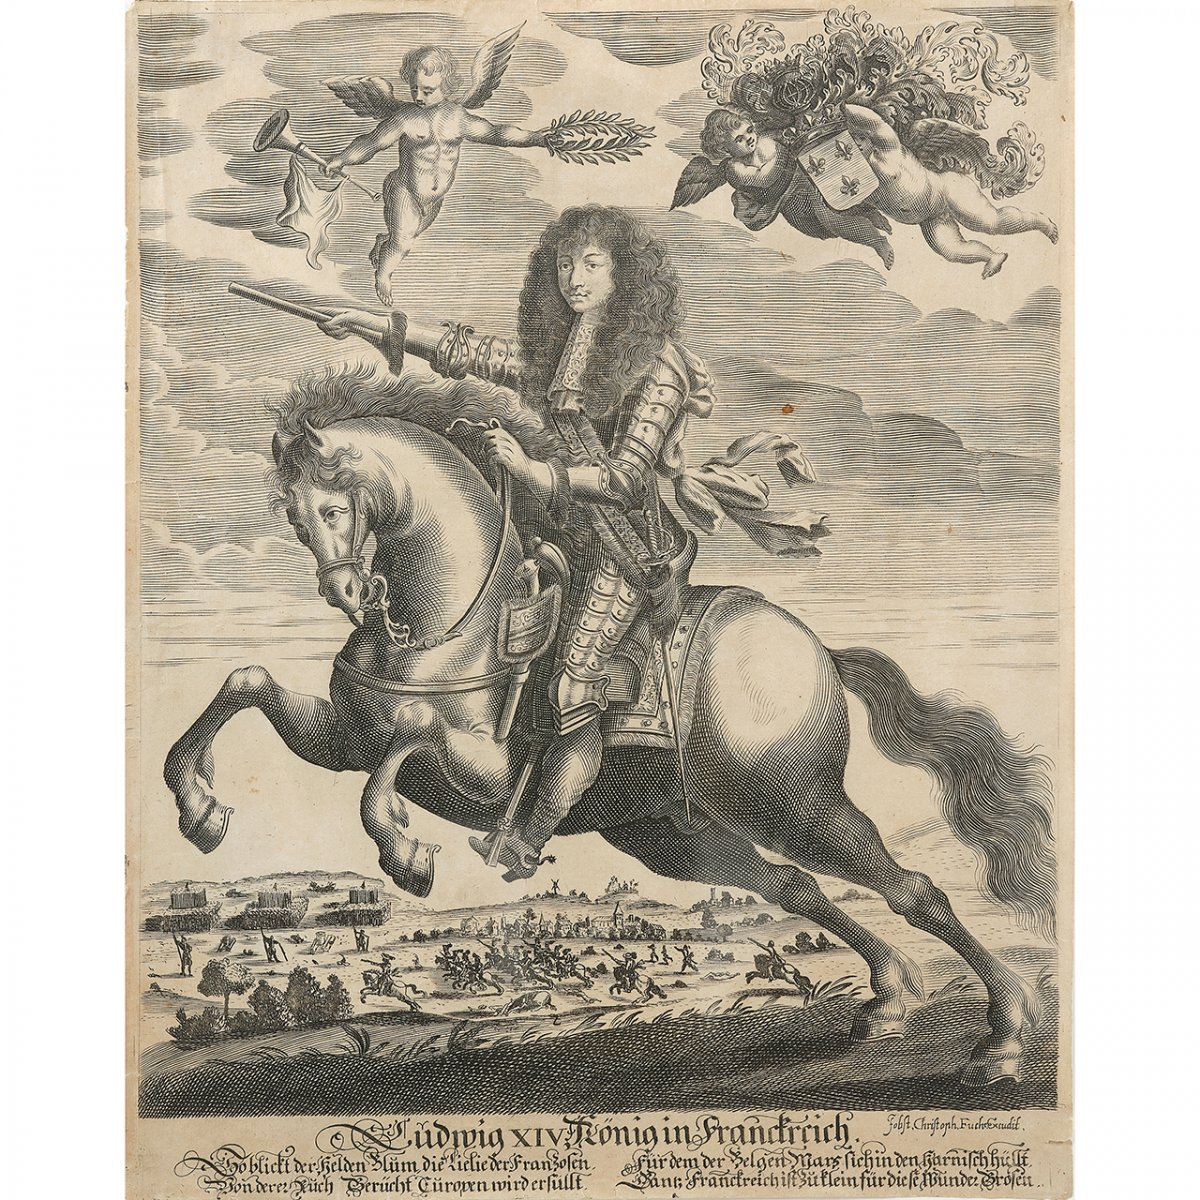 Equestrian Portrait Of Louis XIV During The Siege Of Namur, Engraving After Pierre Mignard